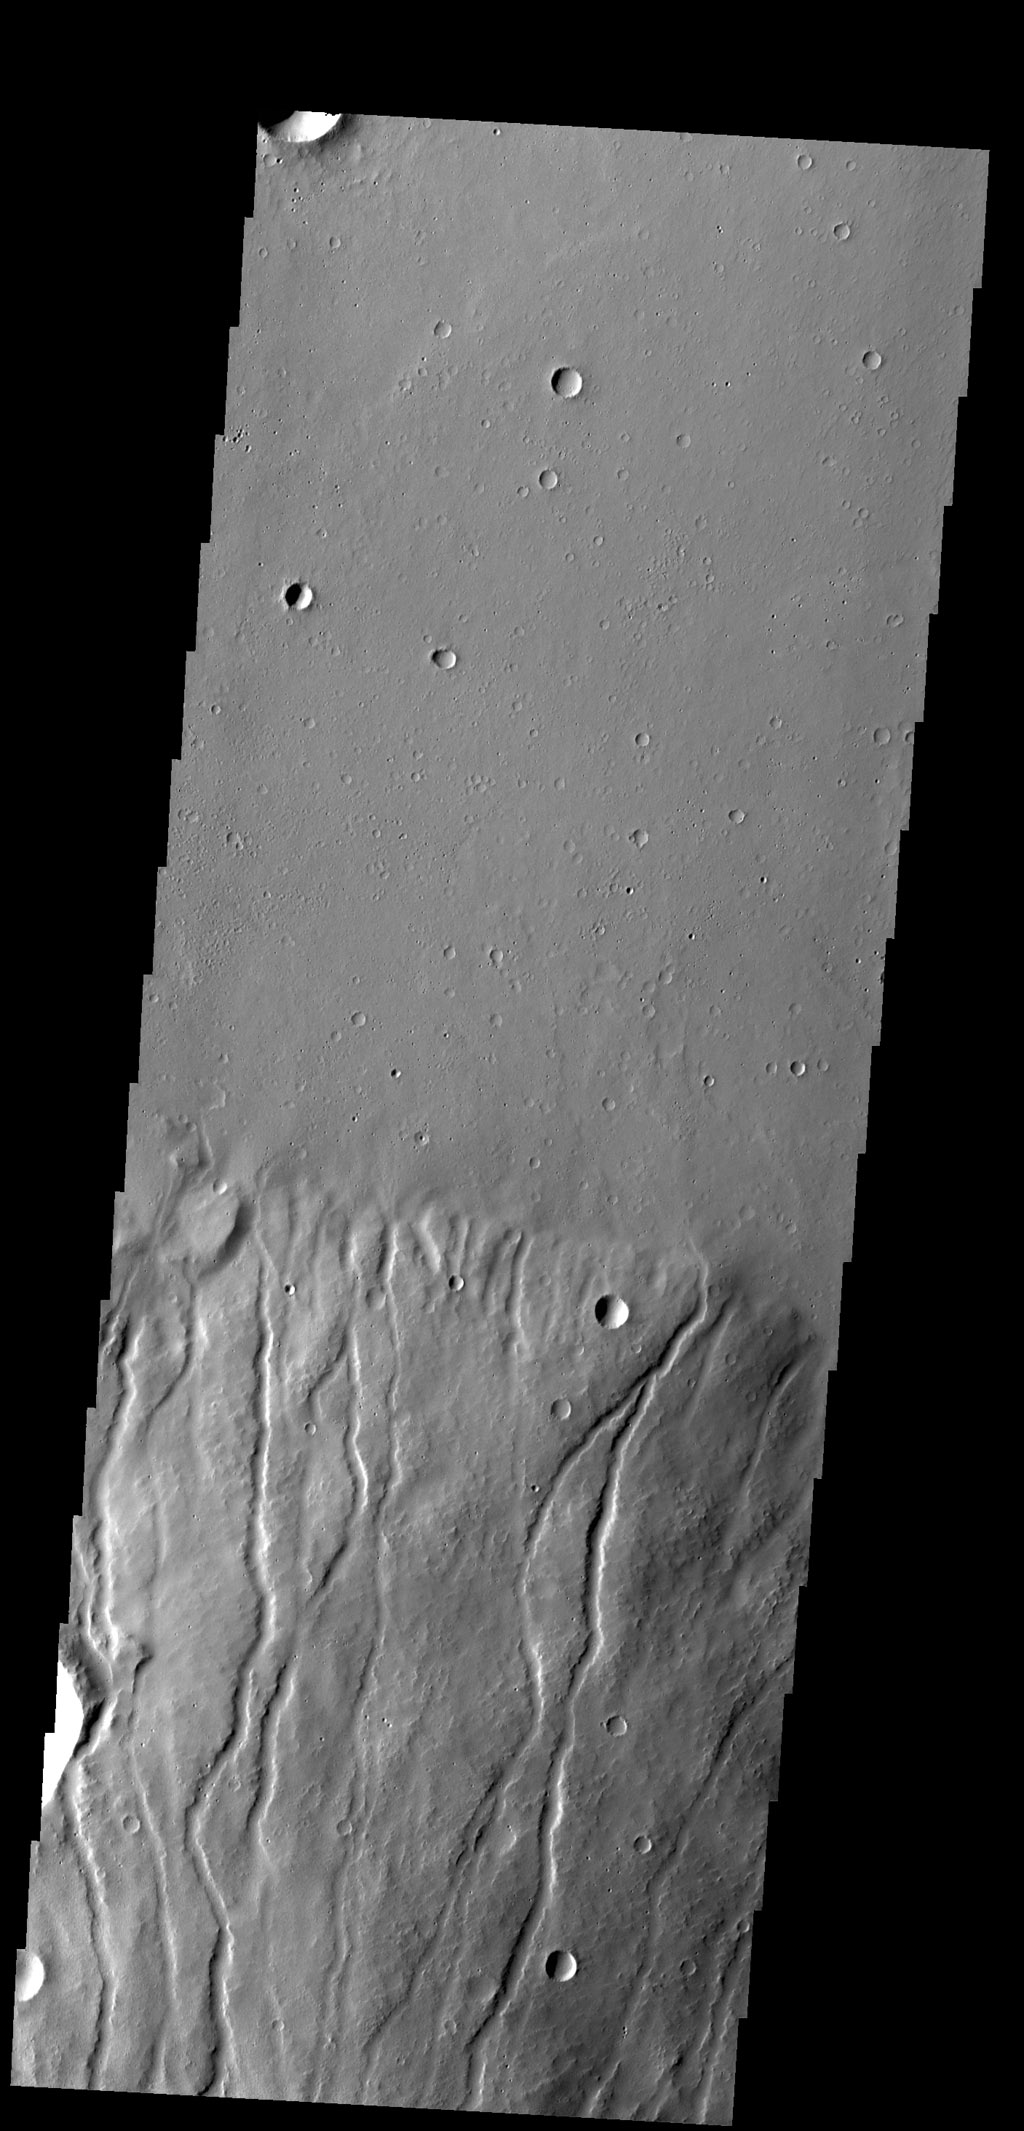 Multiple channels dissect the northern flank of Ceraunius Tholus in this image captured by NASA's 2001 Mars Odyssey spacecraft.